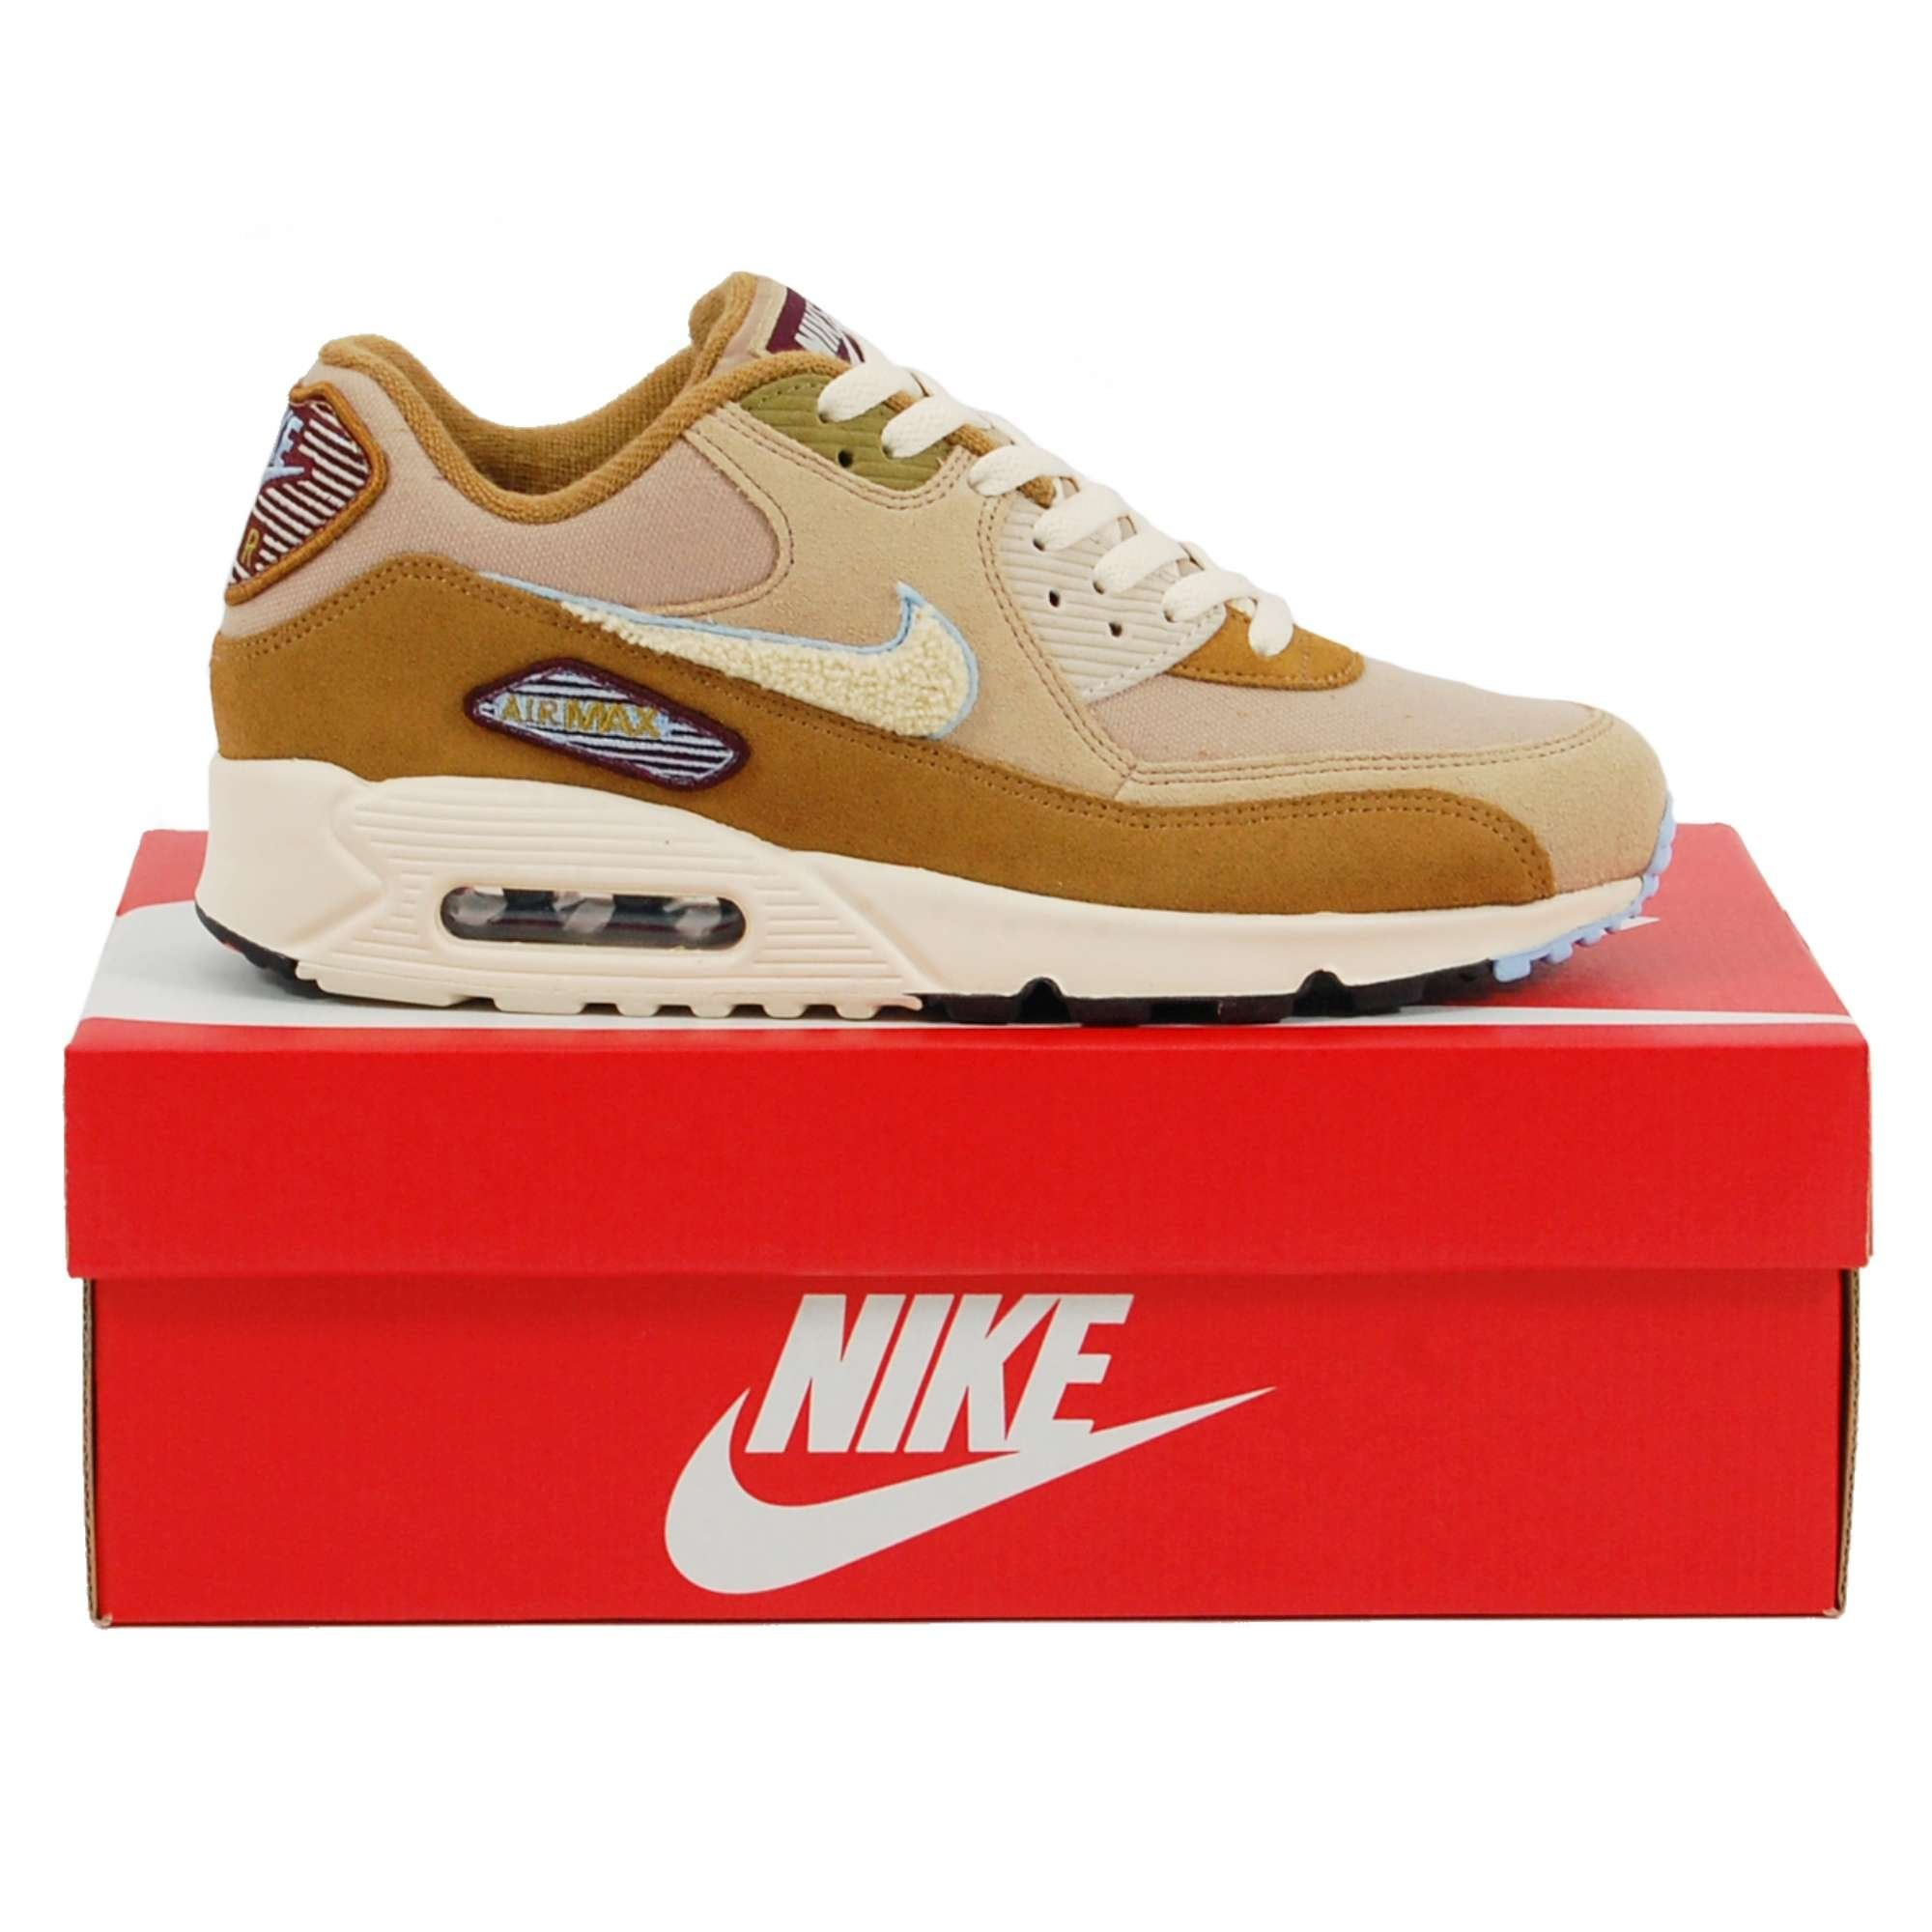 Nike Air Max 90 Premium SE Muted Bronze Royal Tint Desert Light Cream